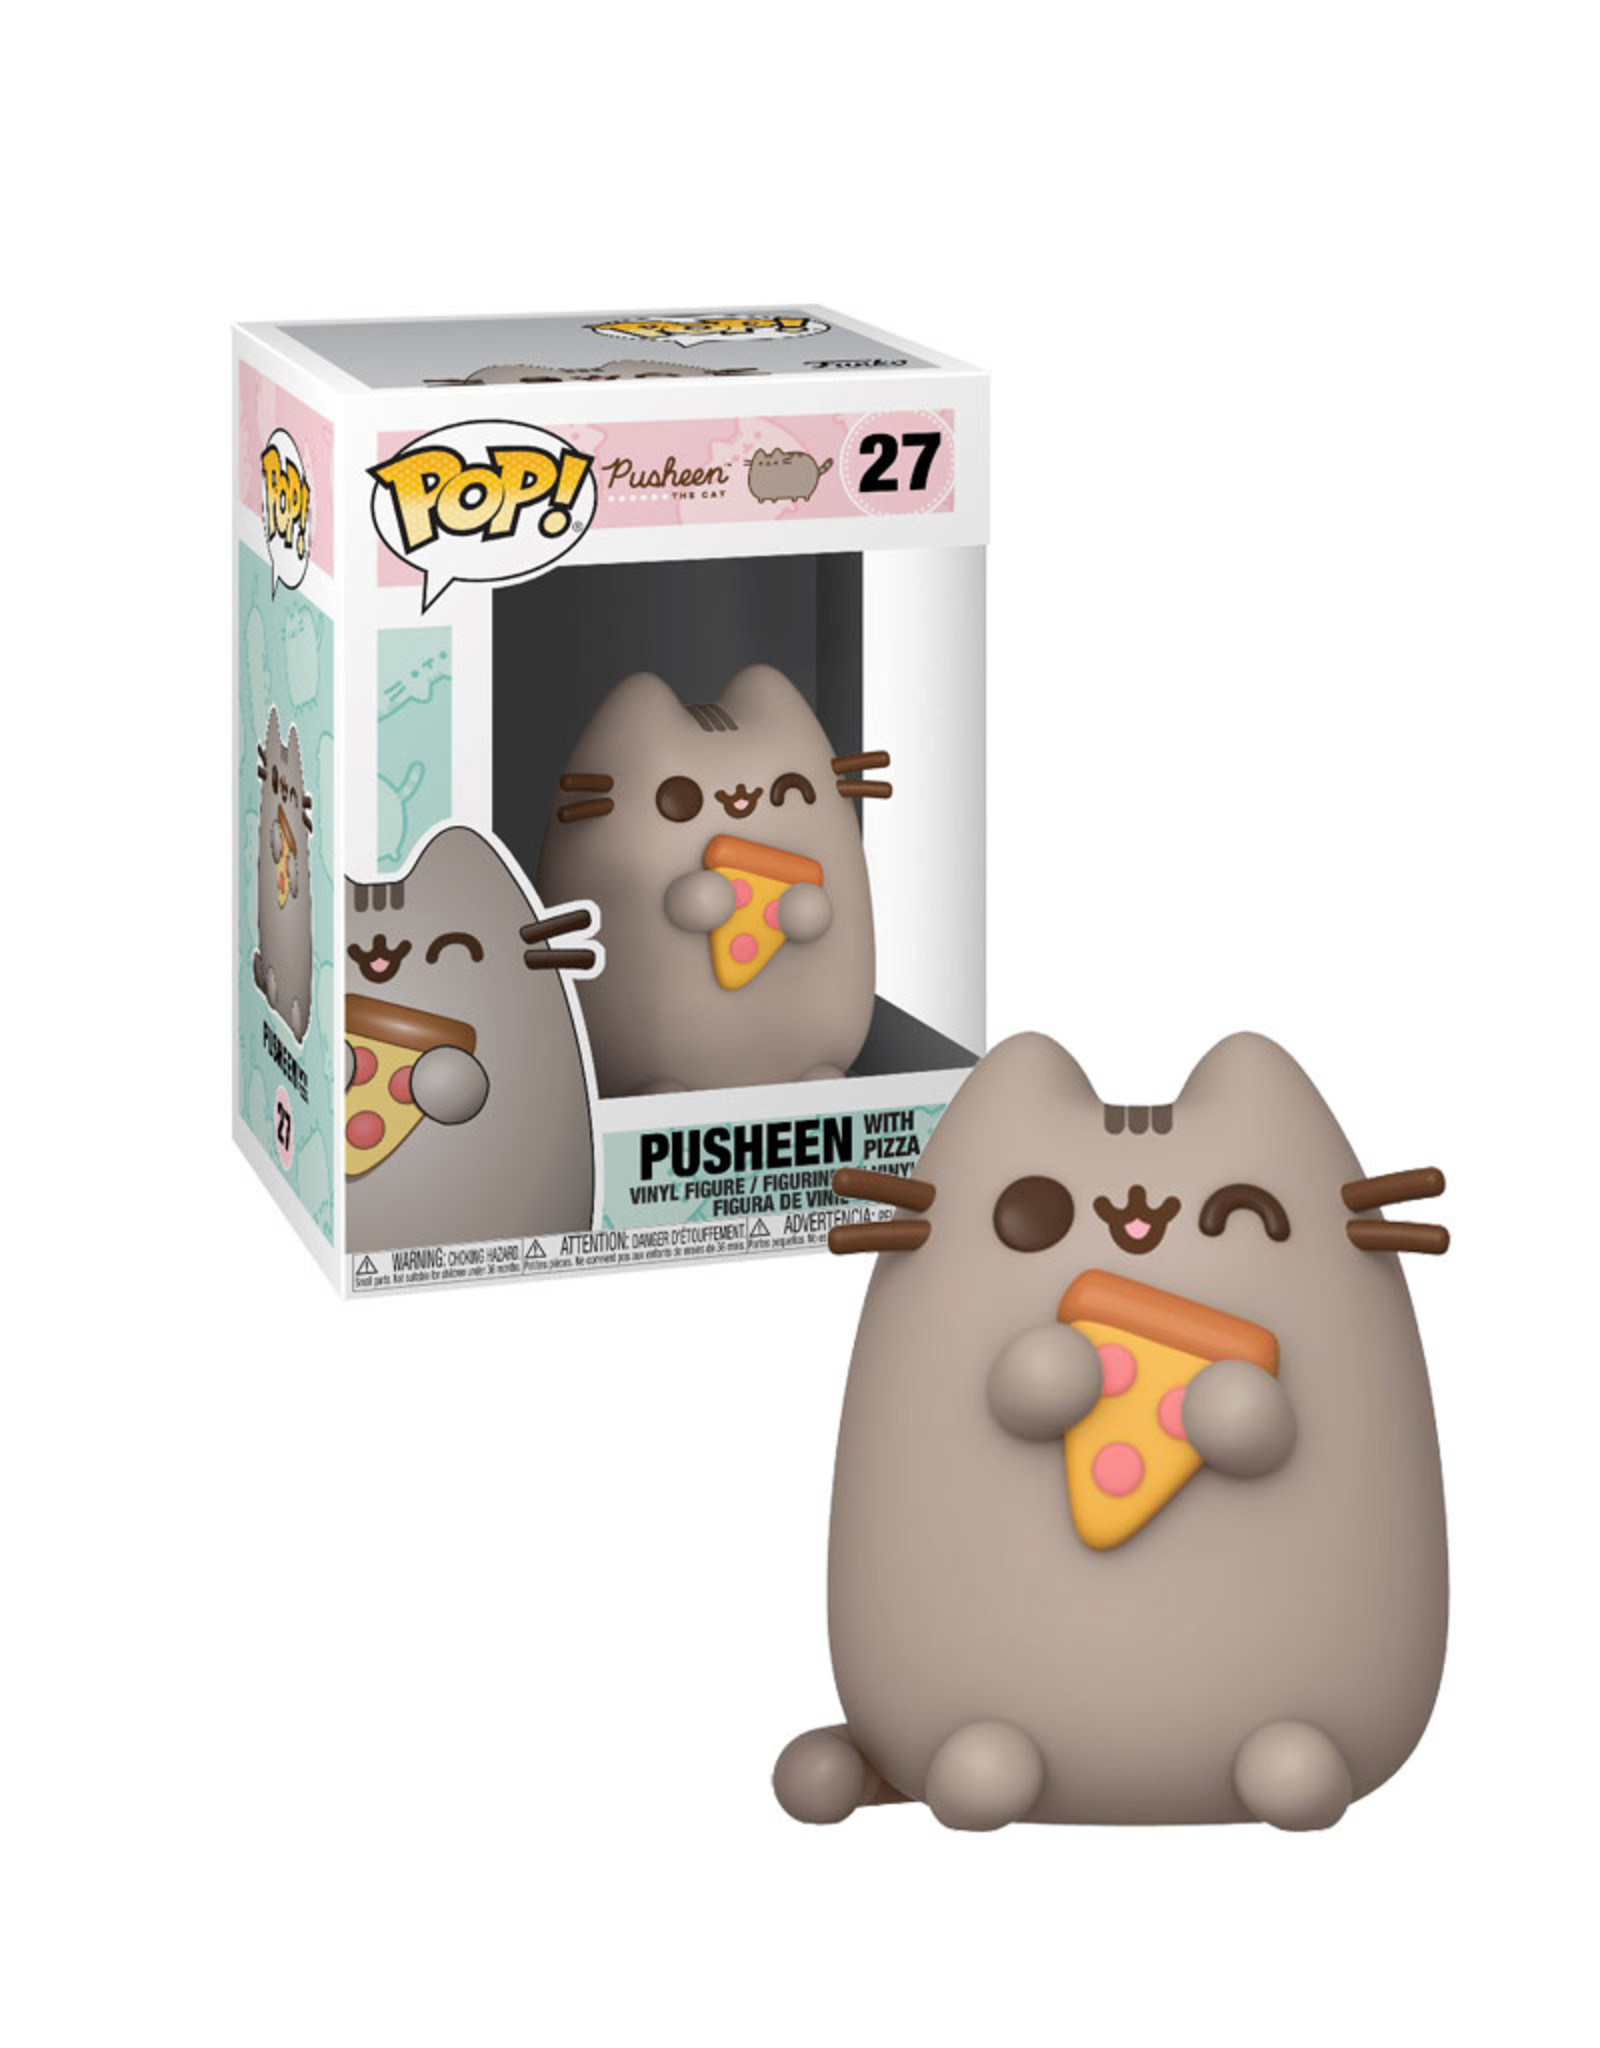 Pusheen with Pizza 27 ( Funko Pop ) Pusheen